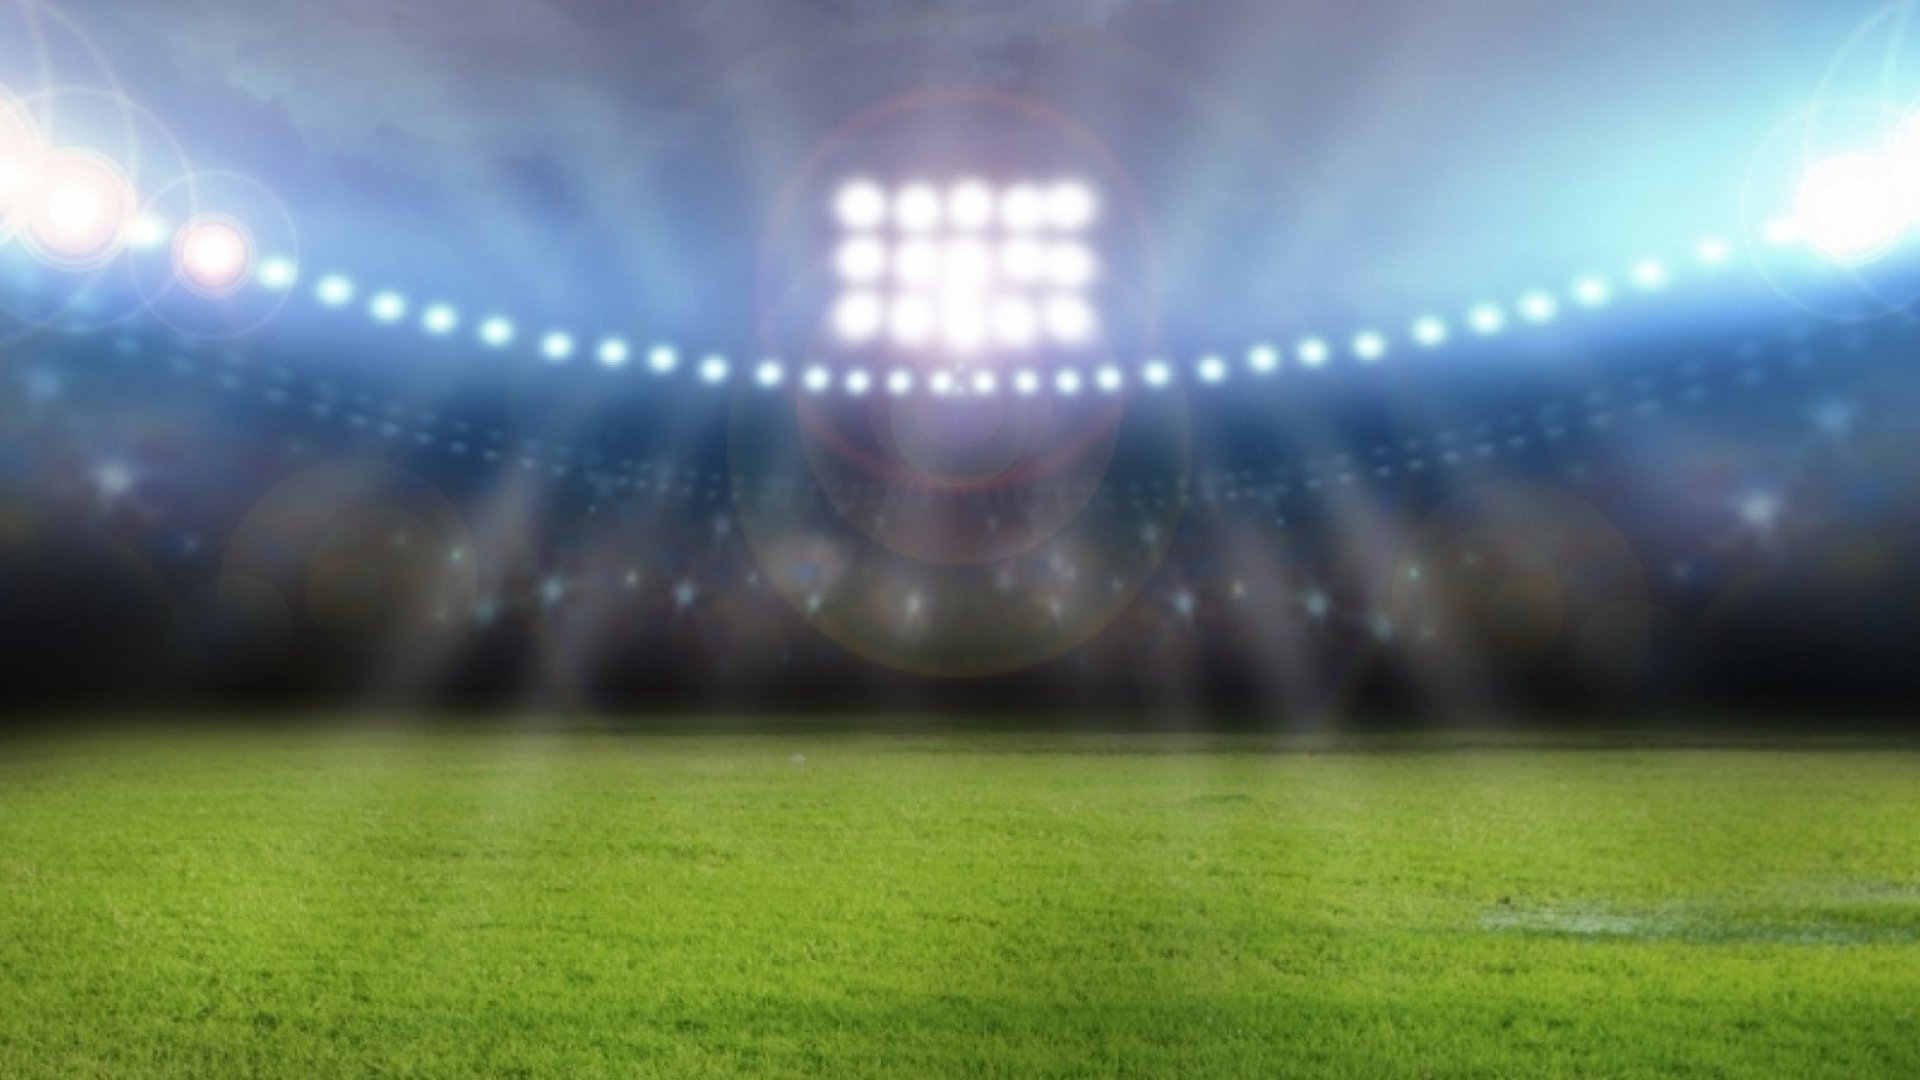 The Best Ways for Young Entrepreneurs to Break Into the Sports Industry